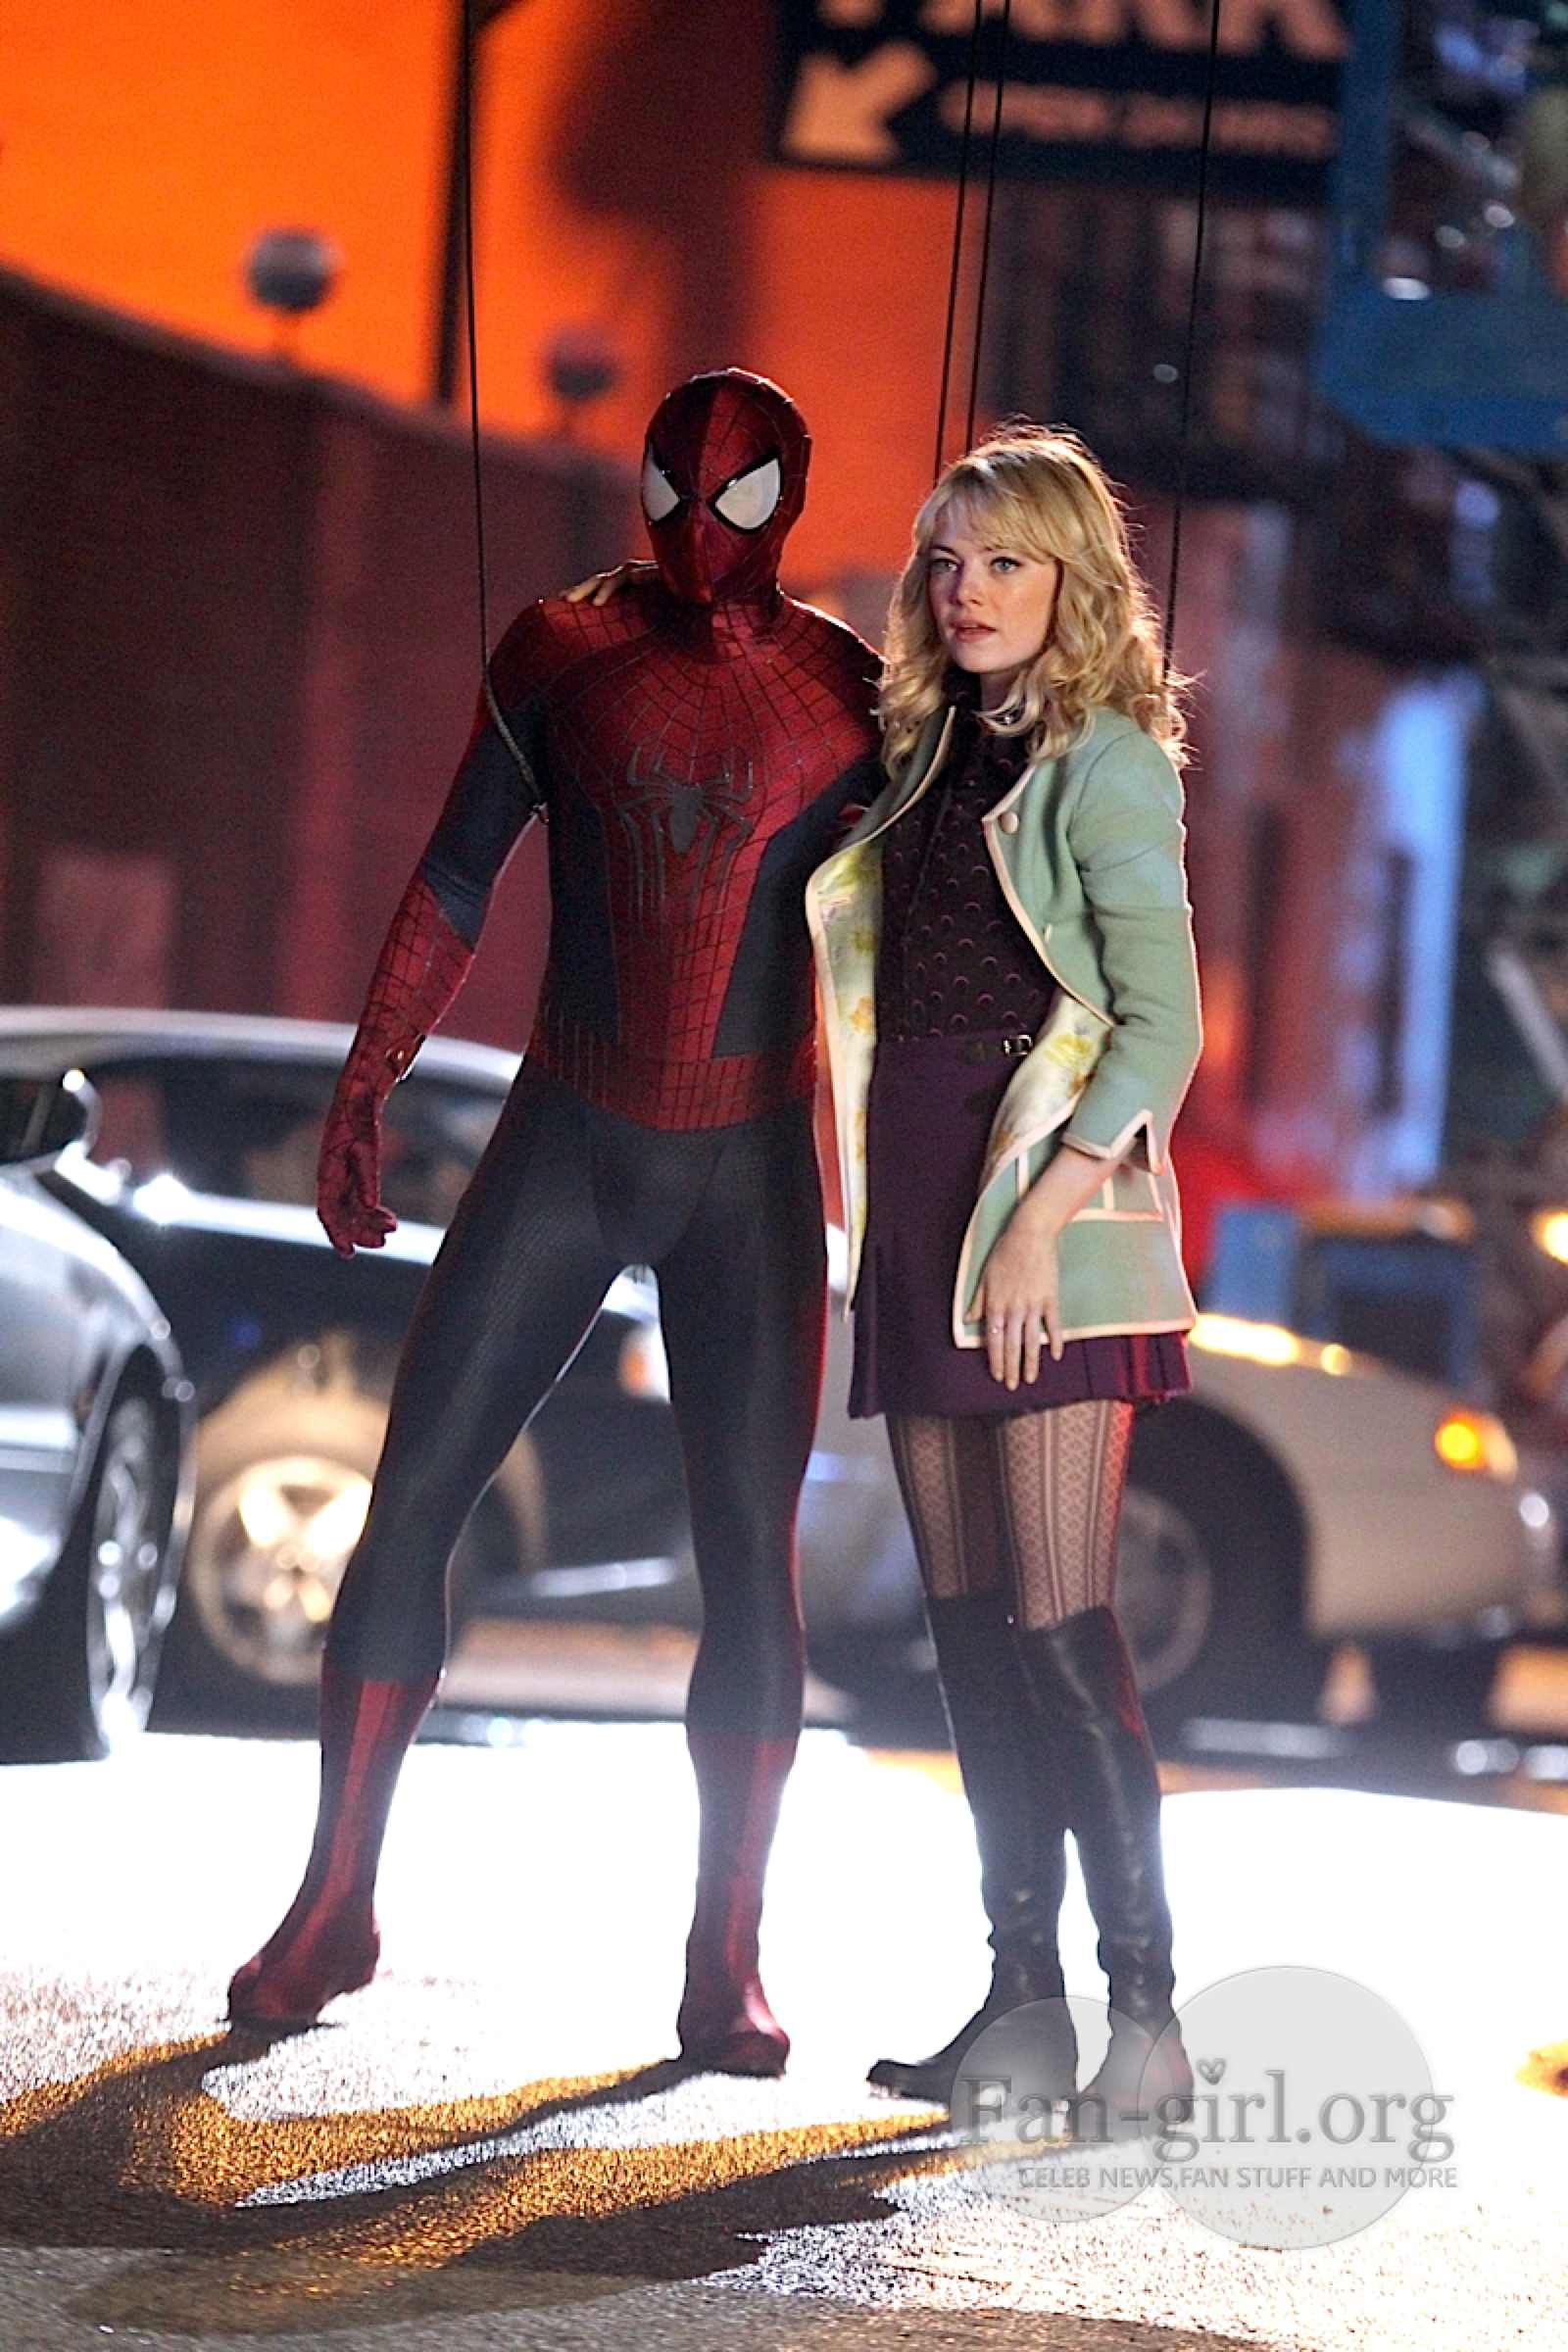 amazing spiderman 2 movie on set photos | The Amazing Spiderman 2 Set – Spiderman swings Gwen to safety | Fan ...